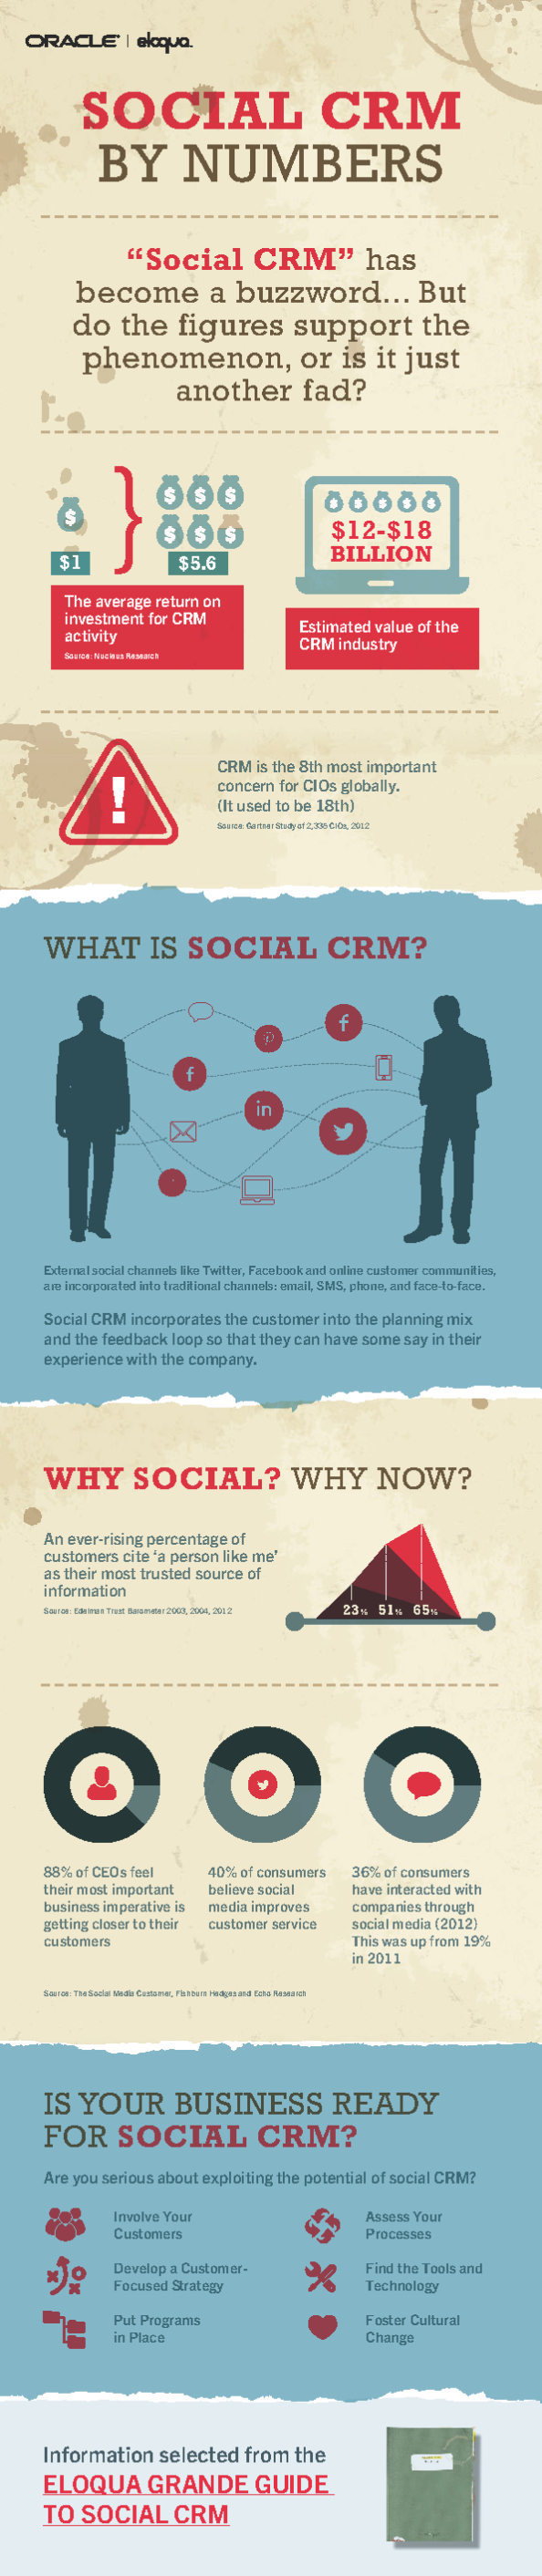 Social CRM by Numbers[Infographic]